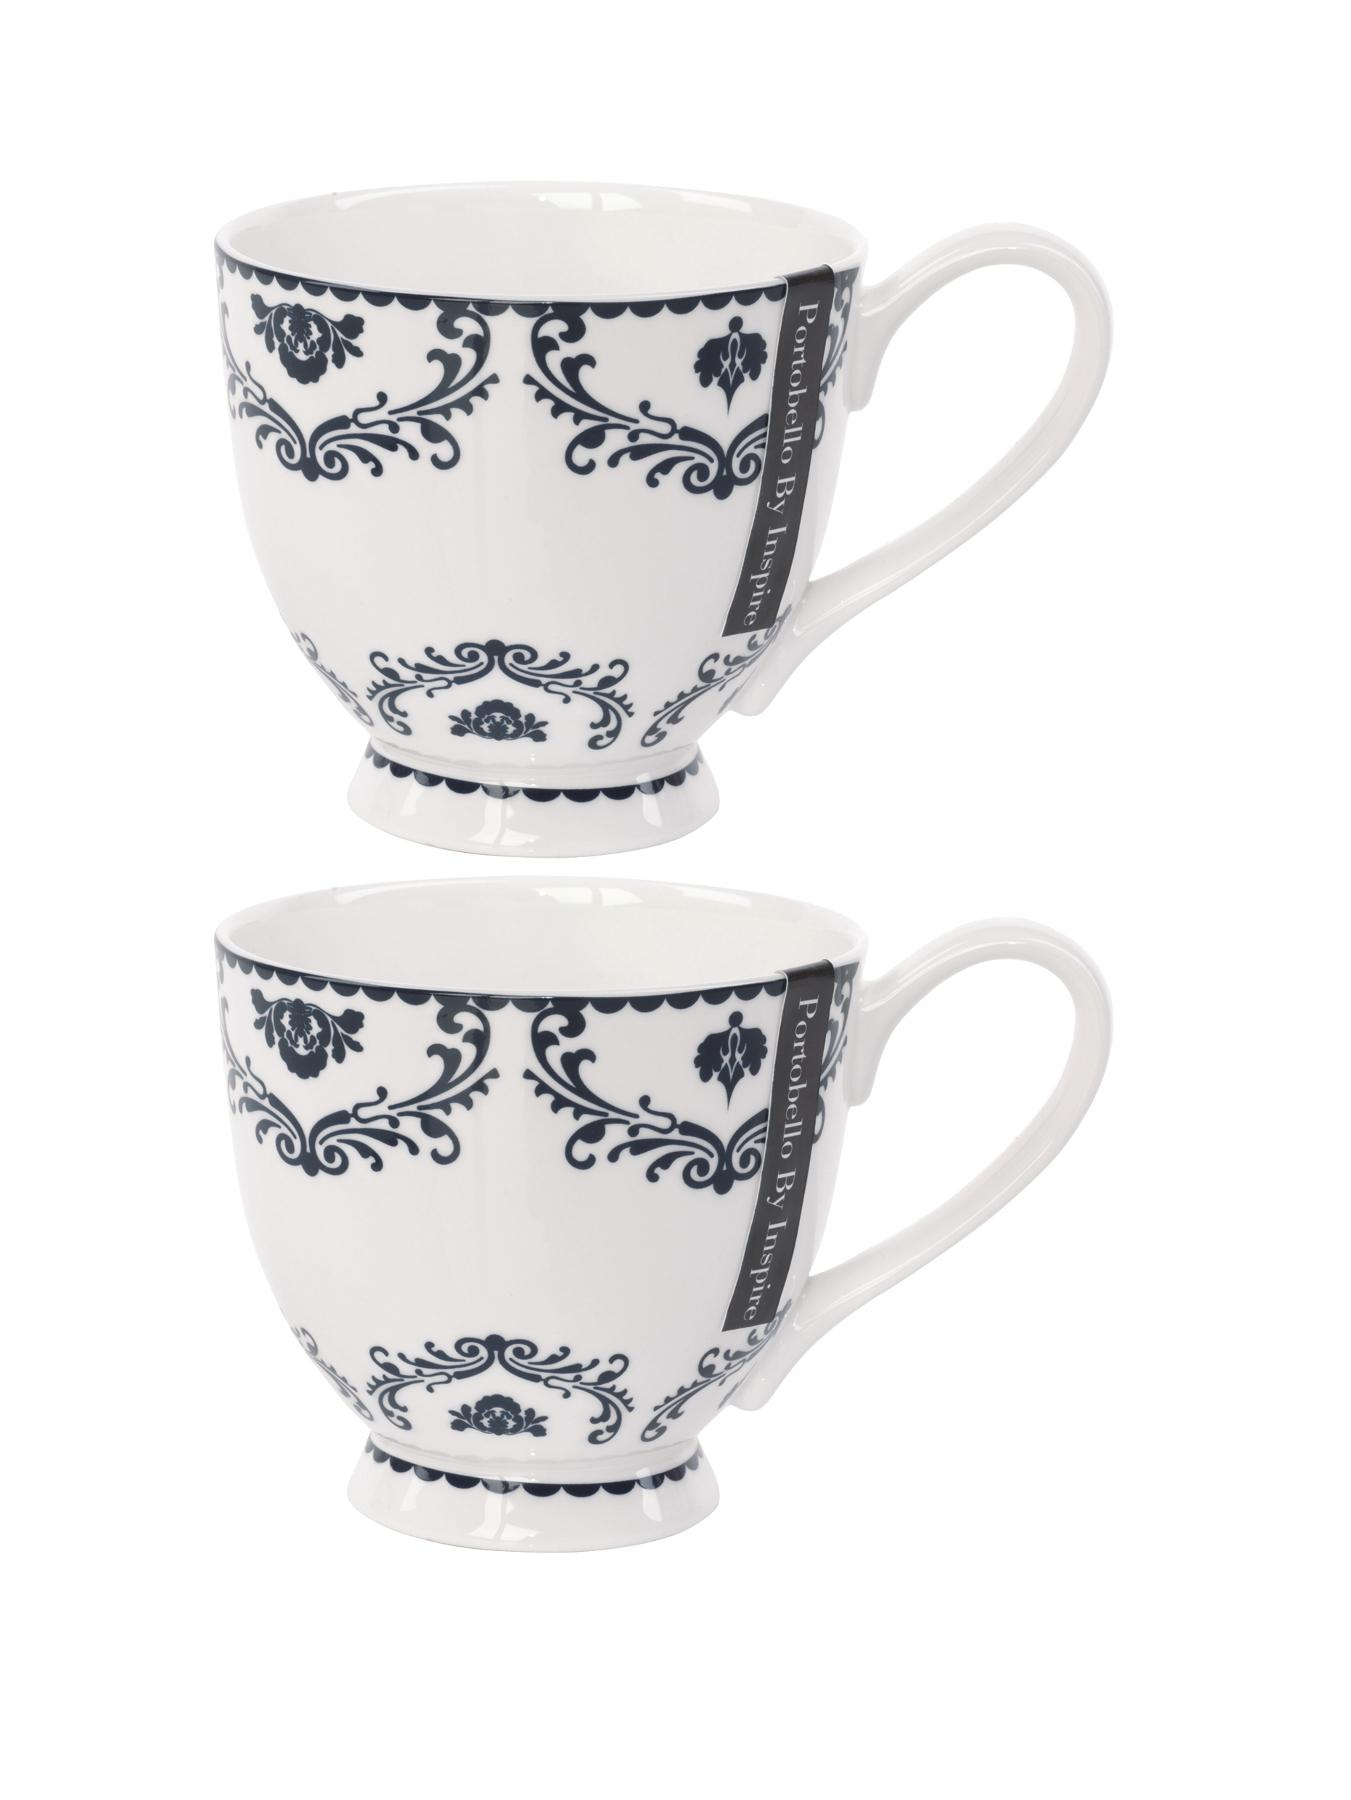 Opulence Footed Mugs - Multi (set of 2)